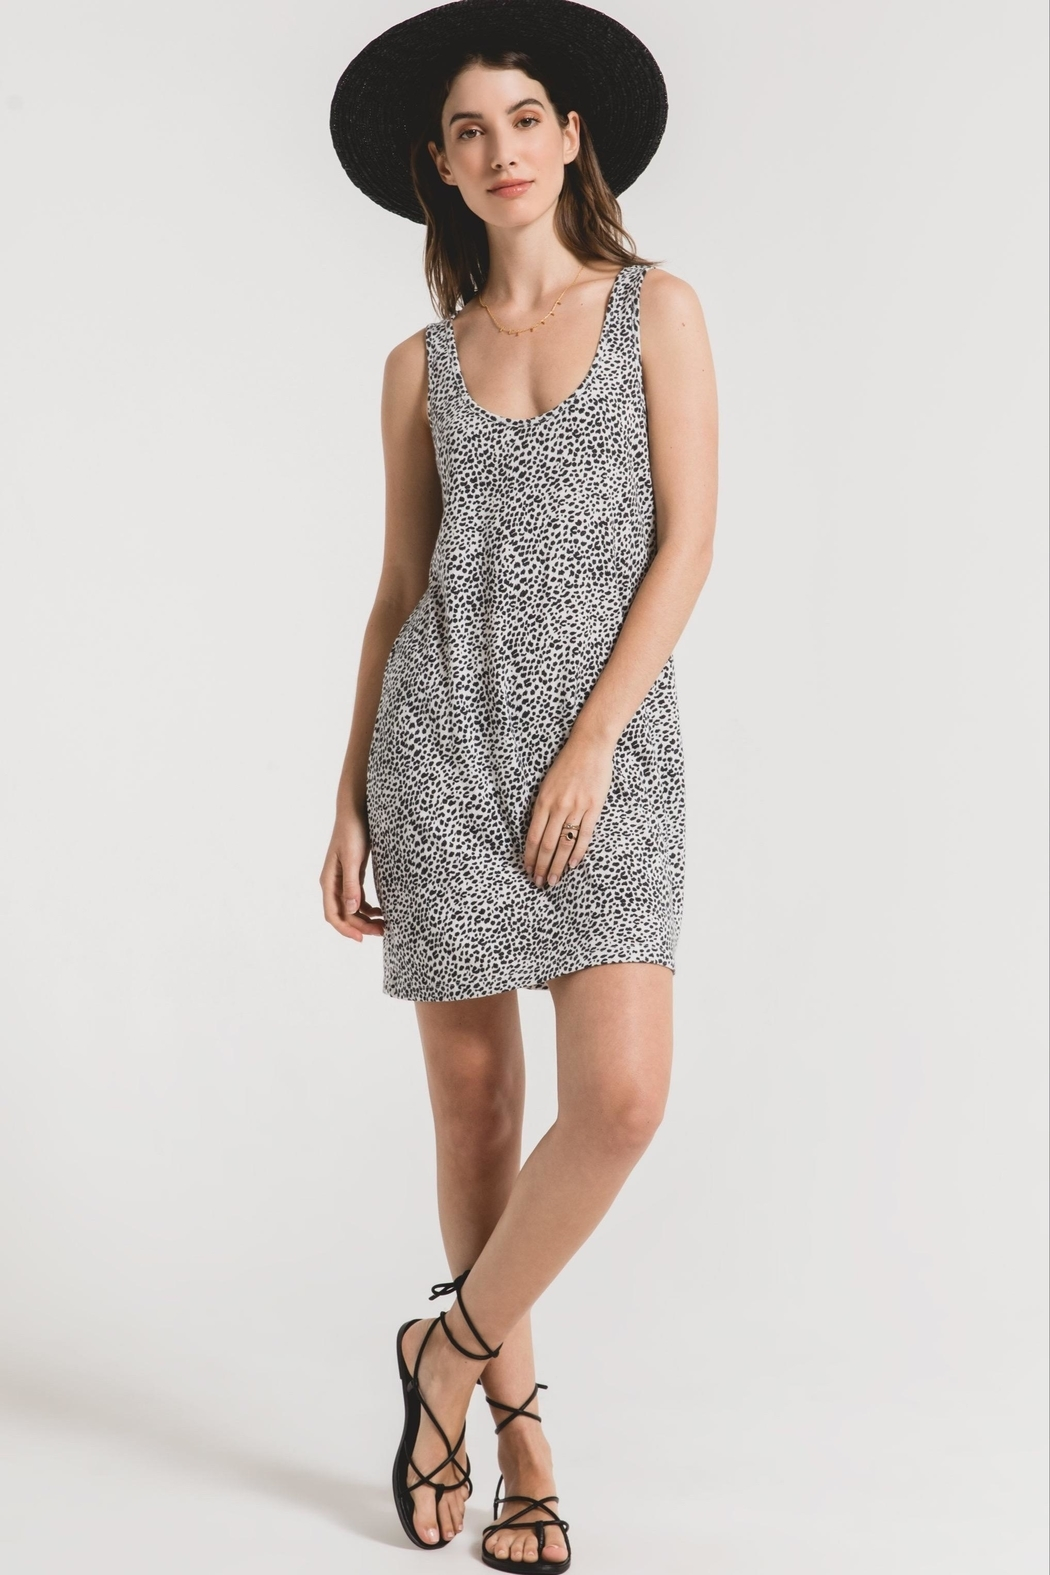 z supply Leopard Tank Dress - Front Cropped Image